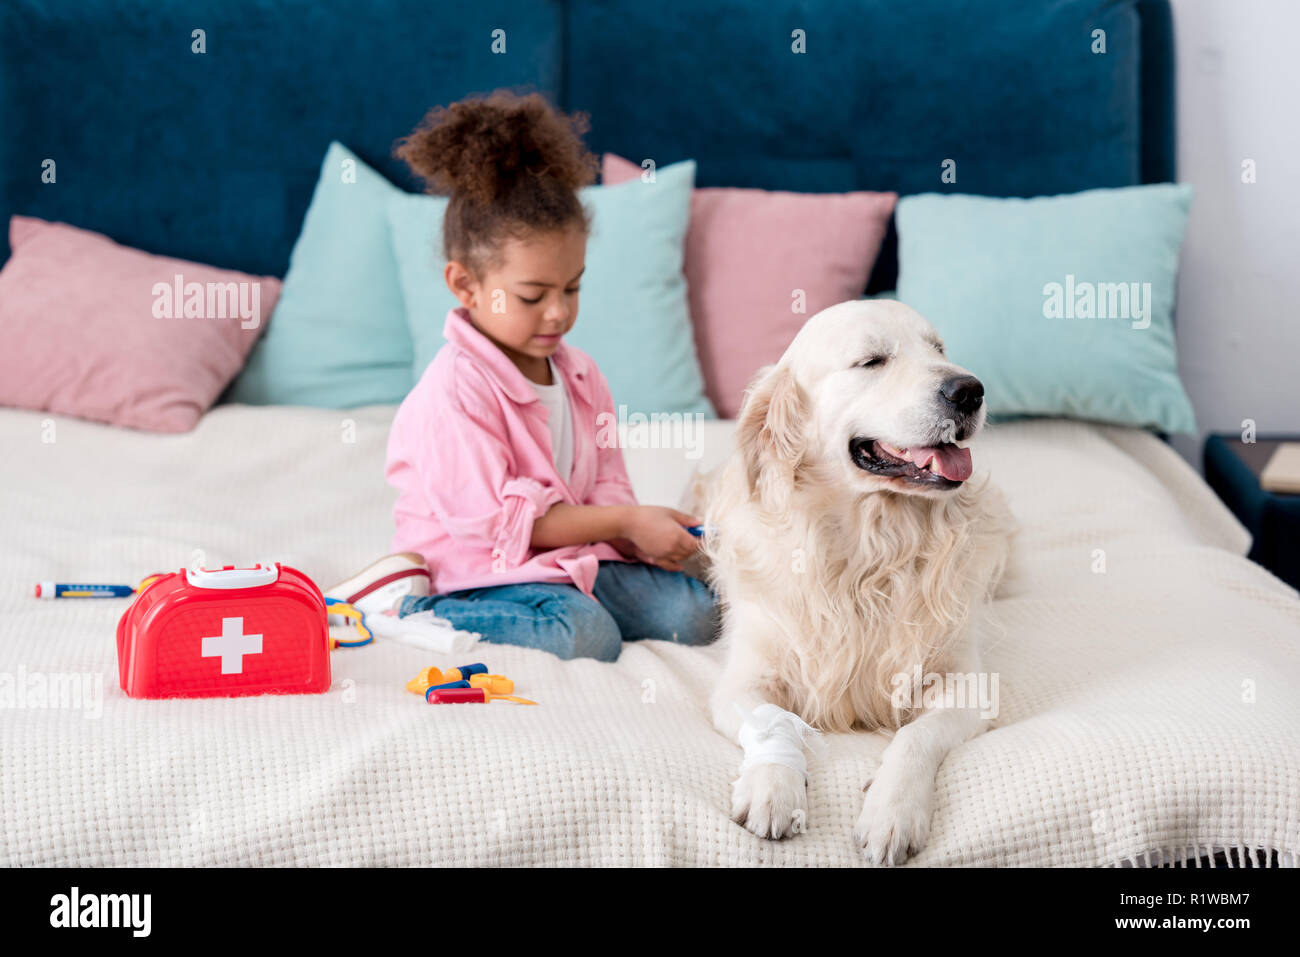 Cute african american child sitting on the bed with toys near her dog - Stock Image